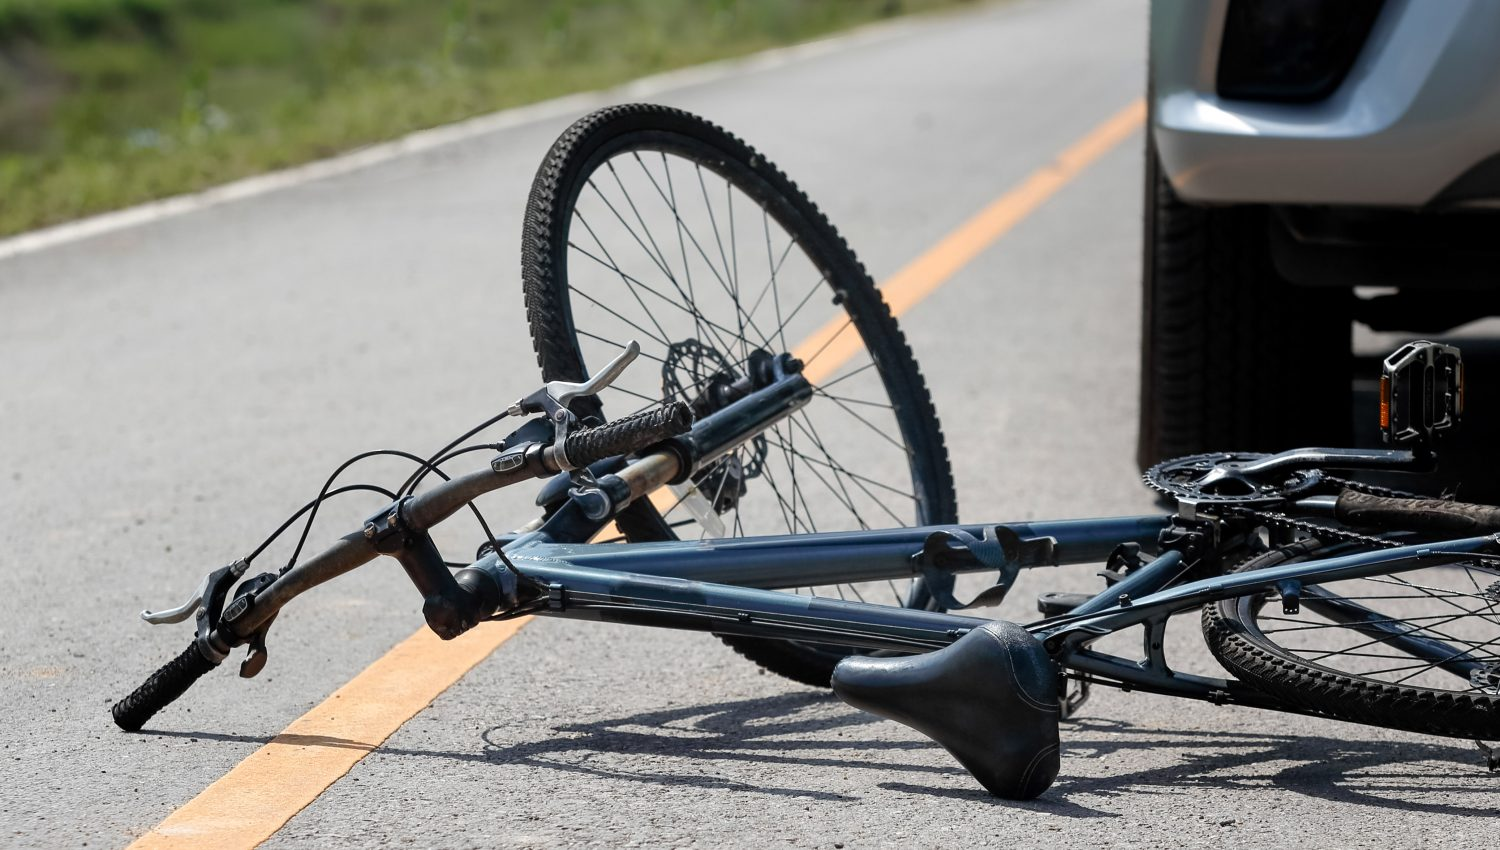 Costa Mesa, CA - 1 Injured in Bicycle Accident on Newport Blvd